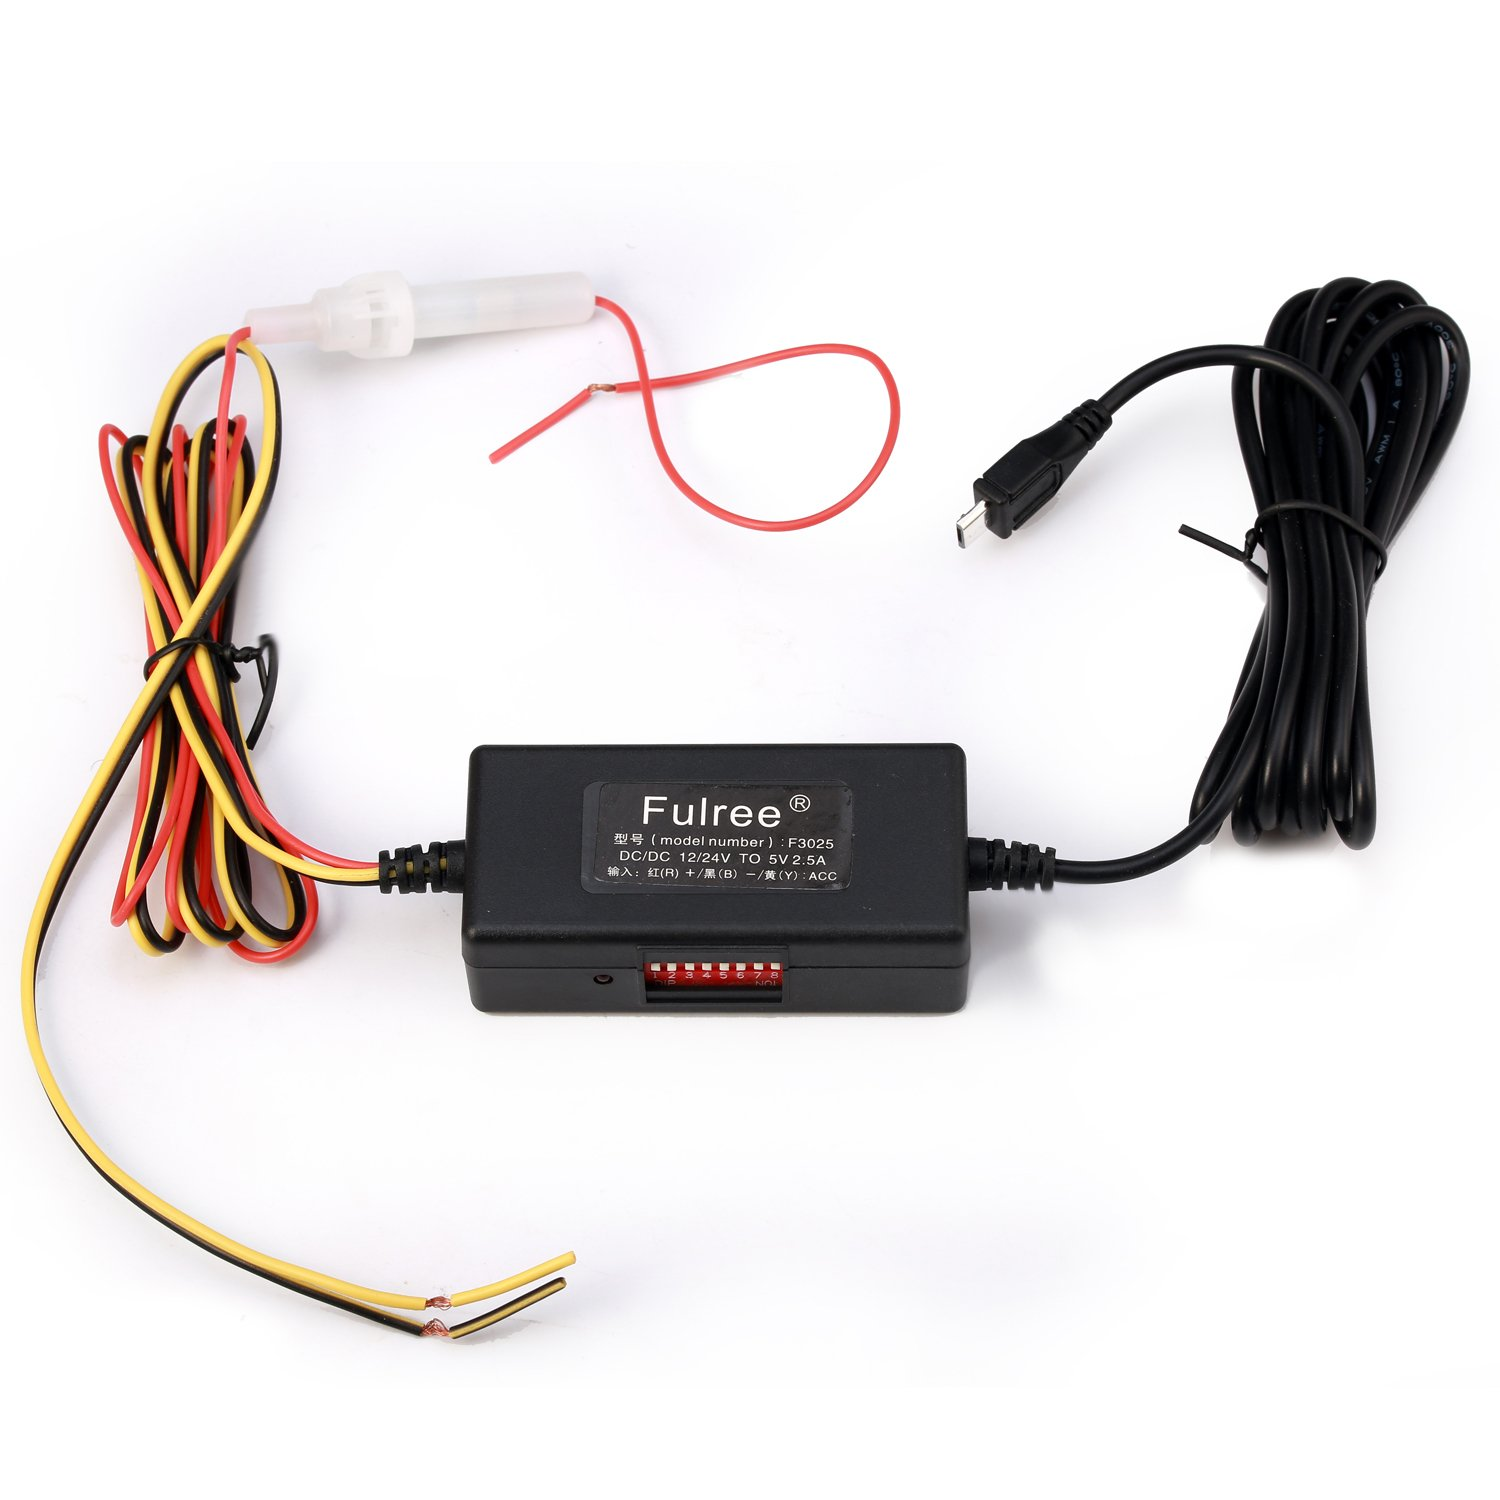 Geree Dc Converter Step Down 12v 24v To 5v Micro Usb 28v With Lm2585 Cable Low Voltage Protection Home Audio Theater